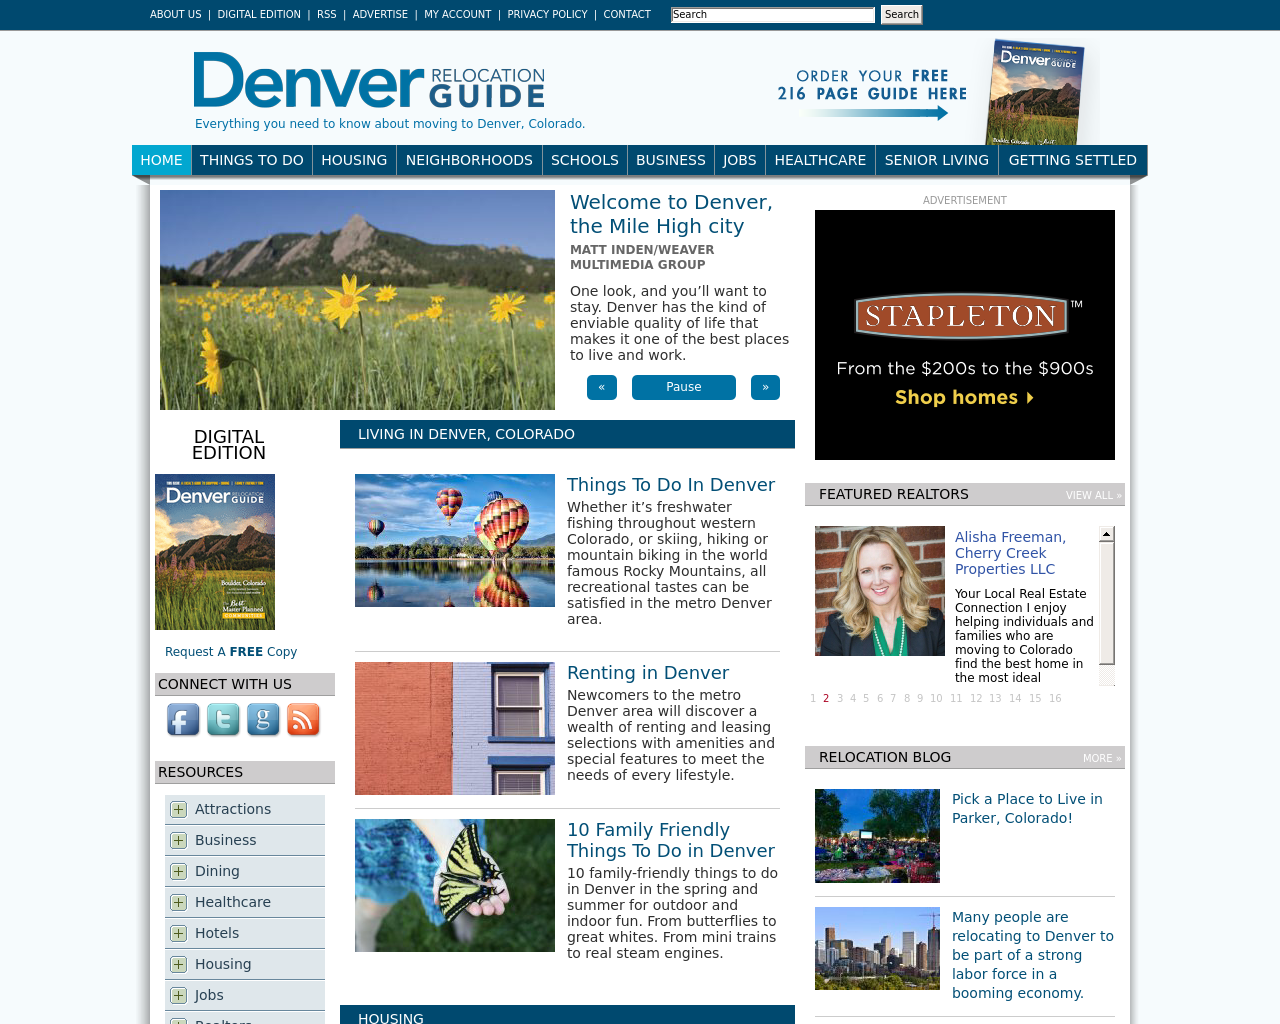 Denver-Relocation-Guide-Advertising-Reviews-Pricing